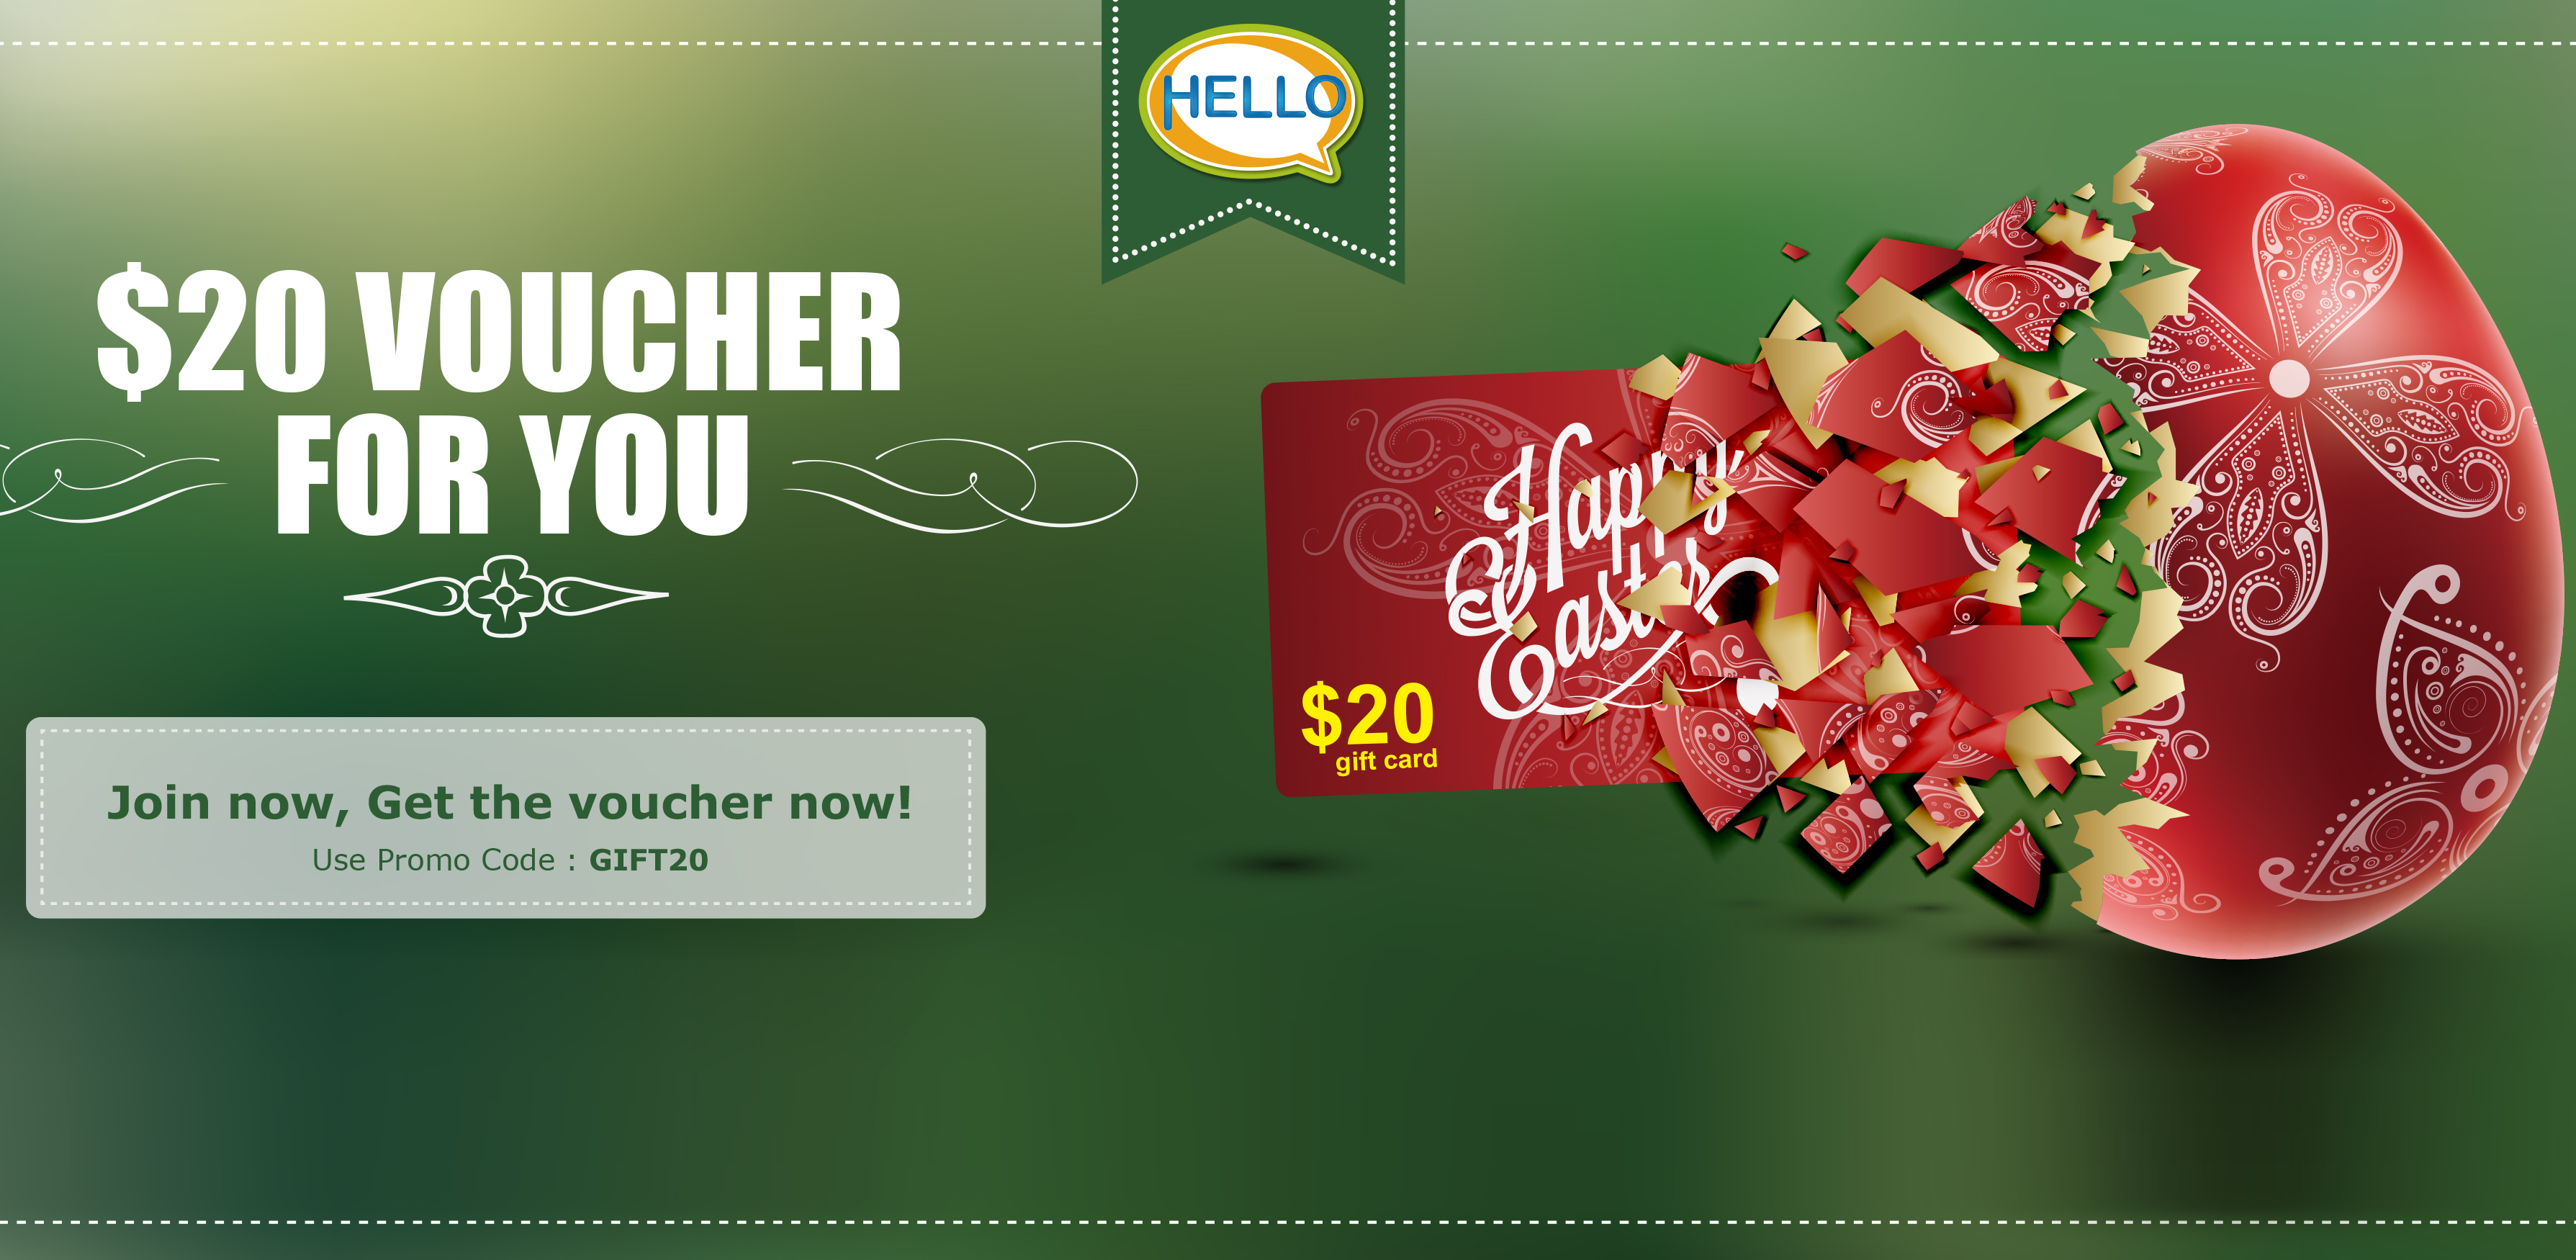 Hello mobile gift20 join one of the following plans and you will get 20 voucher of egiftpay you can choose how to spend it at a variety of major retailers like woolworths negle Choice Image